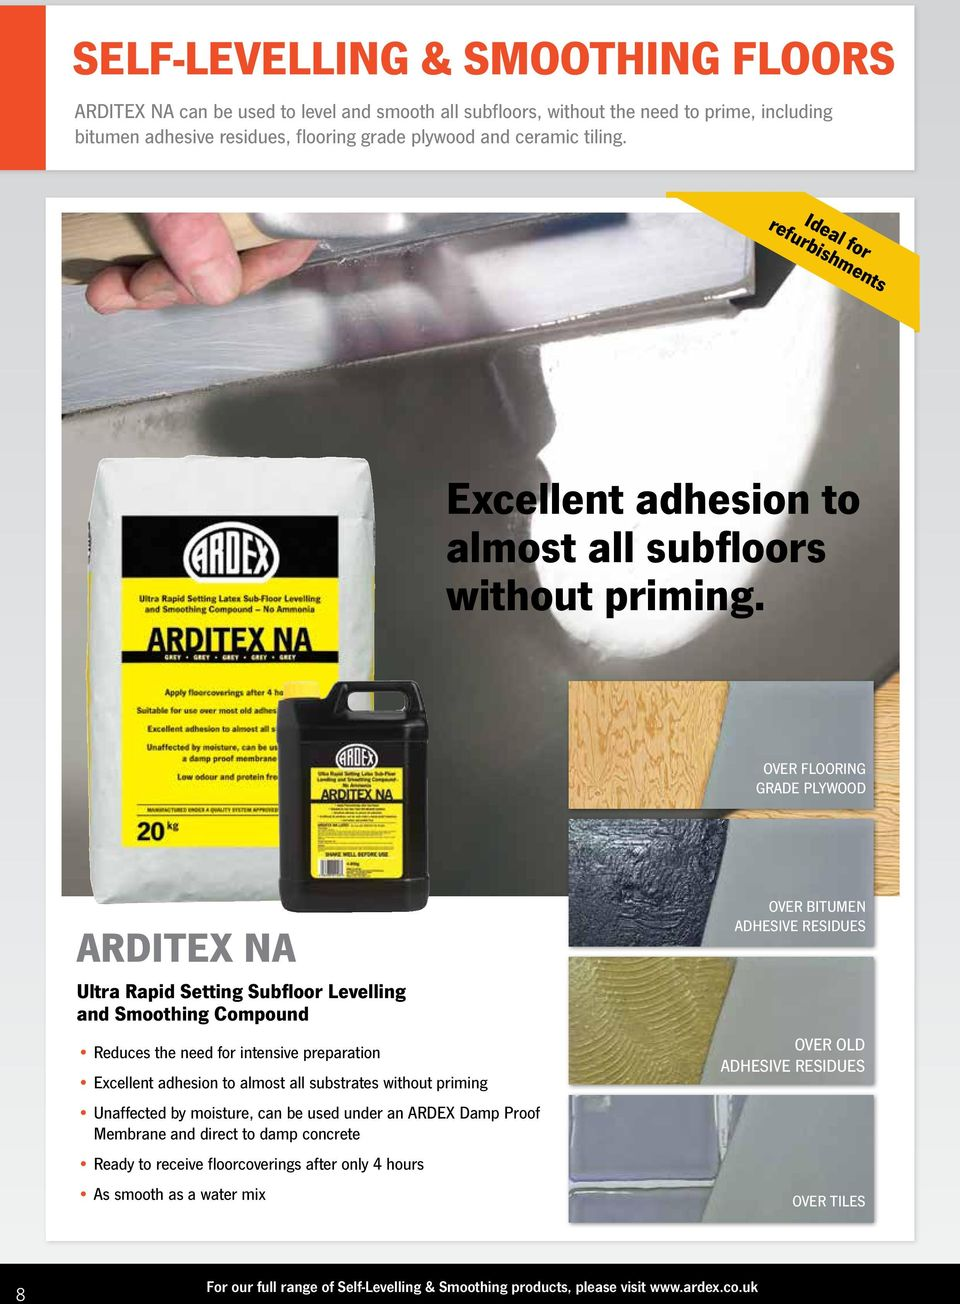 OVER FLOORING GRADE PLYWOOD ARDITEX NA Ultra Rapid Setting Subfloor Levelling and Smoothing Compound Reduces the need for intensive preparation Excellent adhesion to almost all substrates without